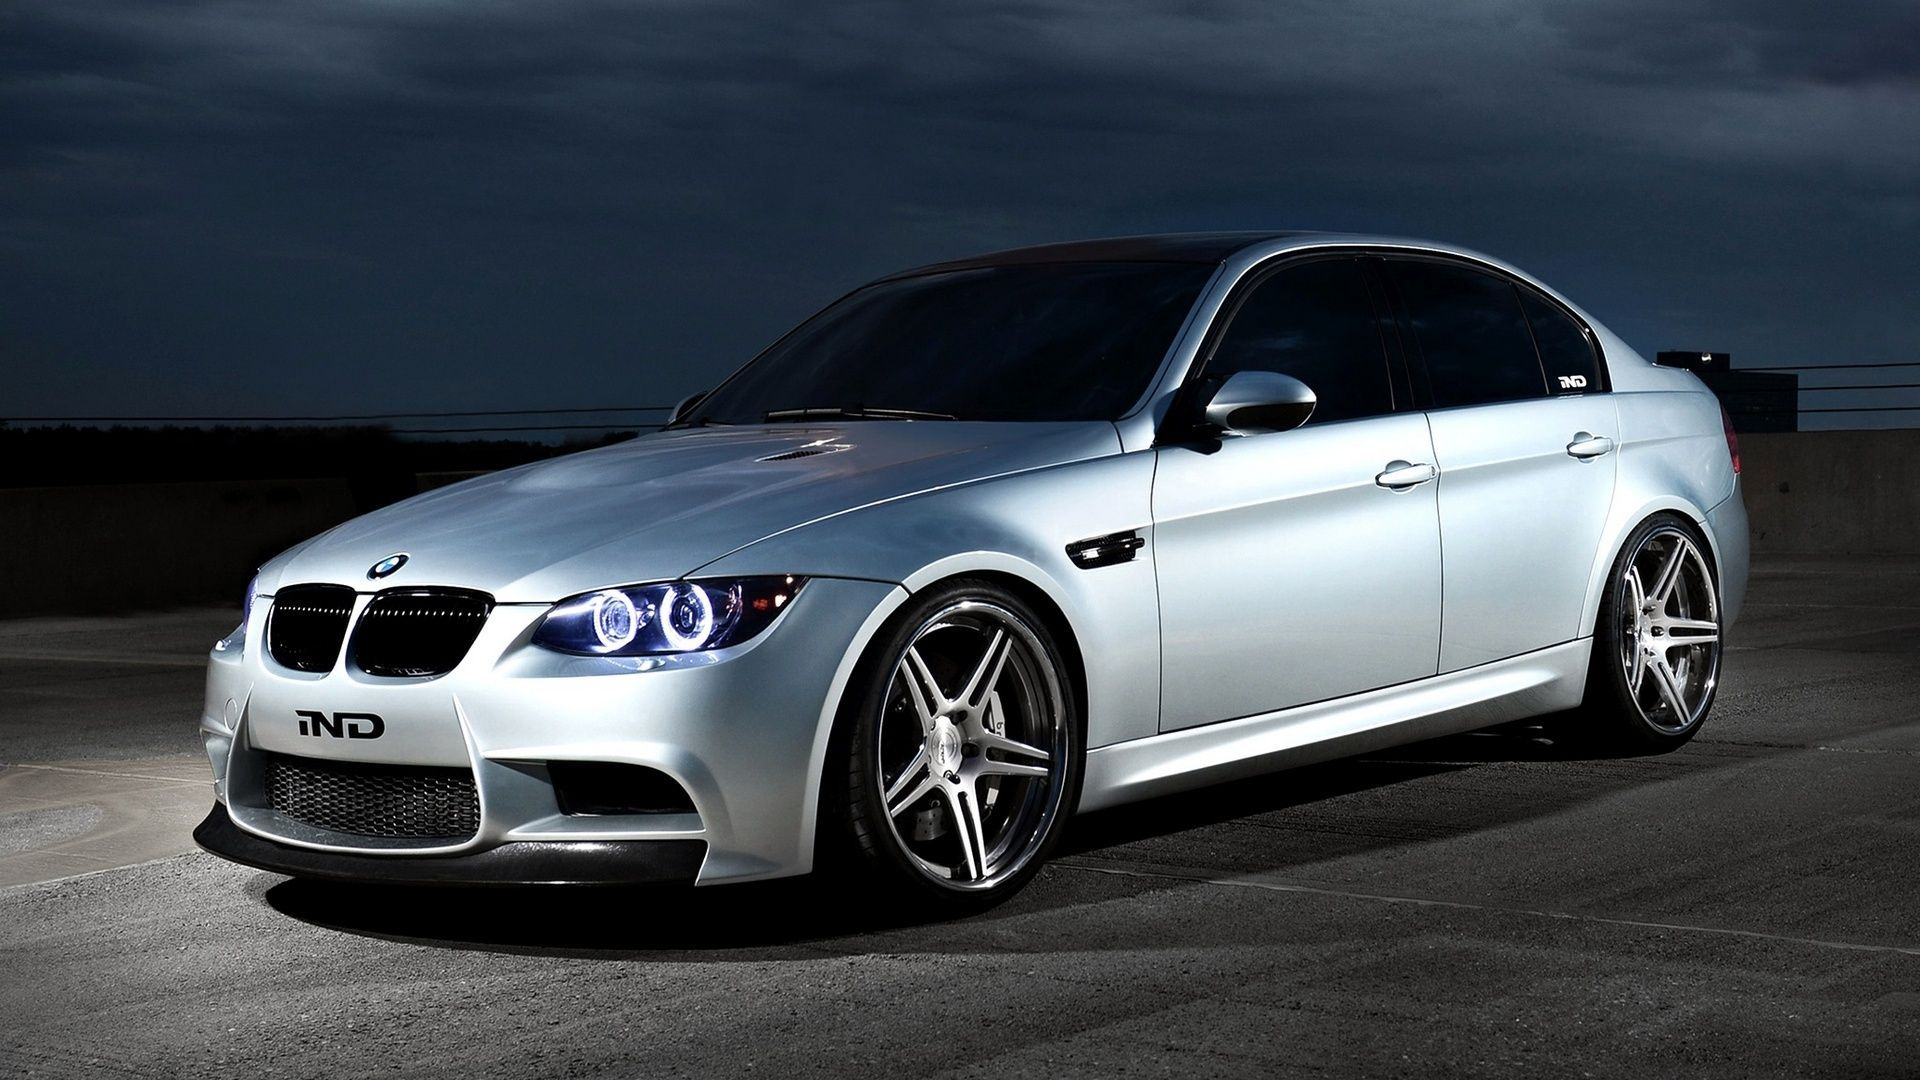 BMW E90 Wallpaper 31 - [1920x1080]